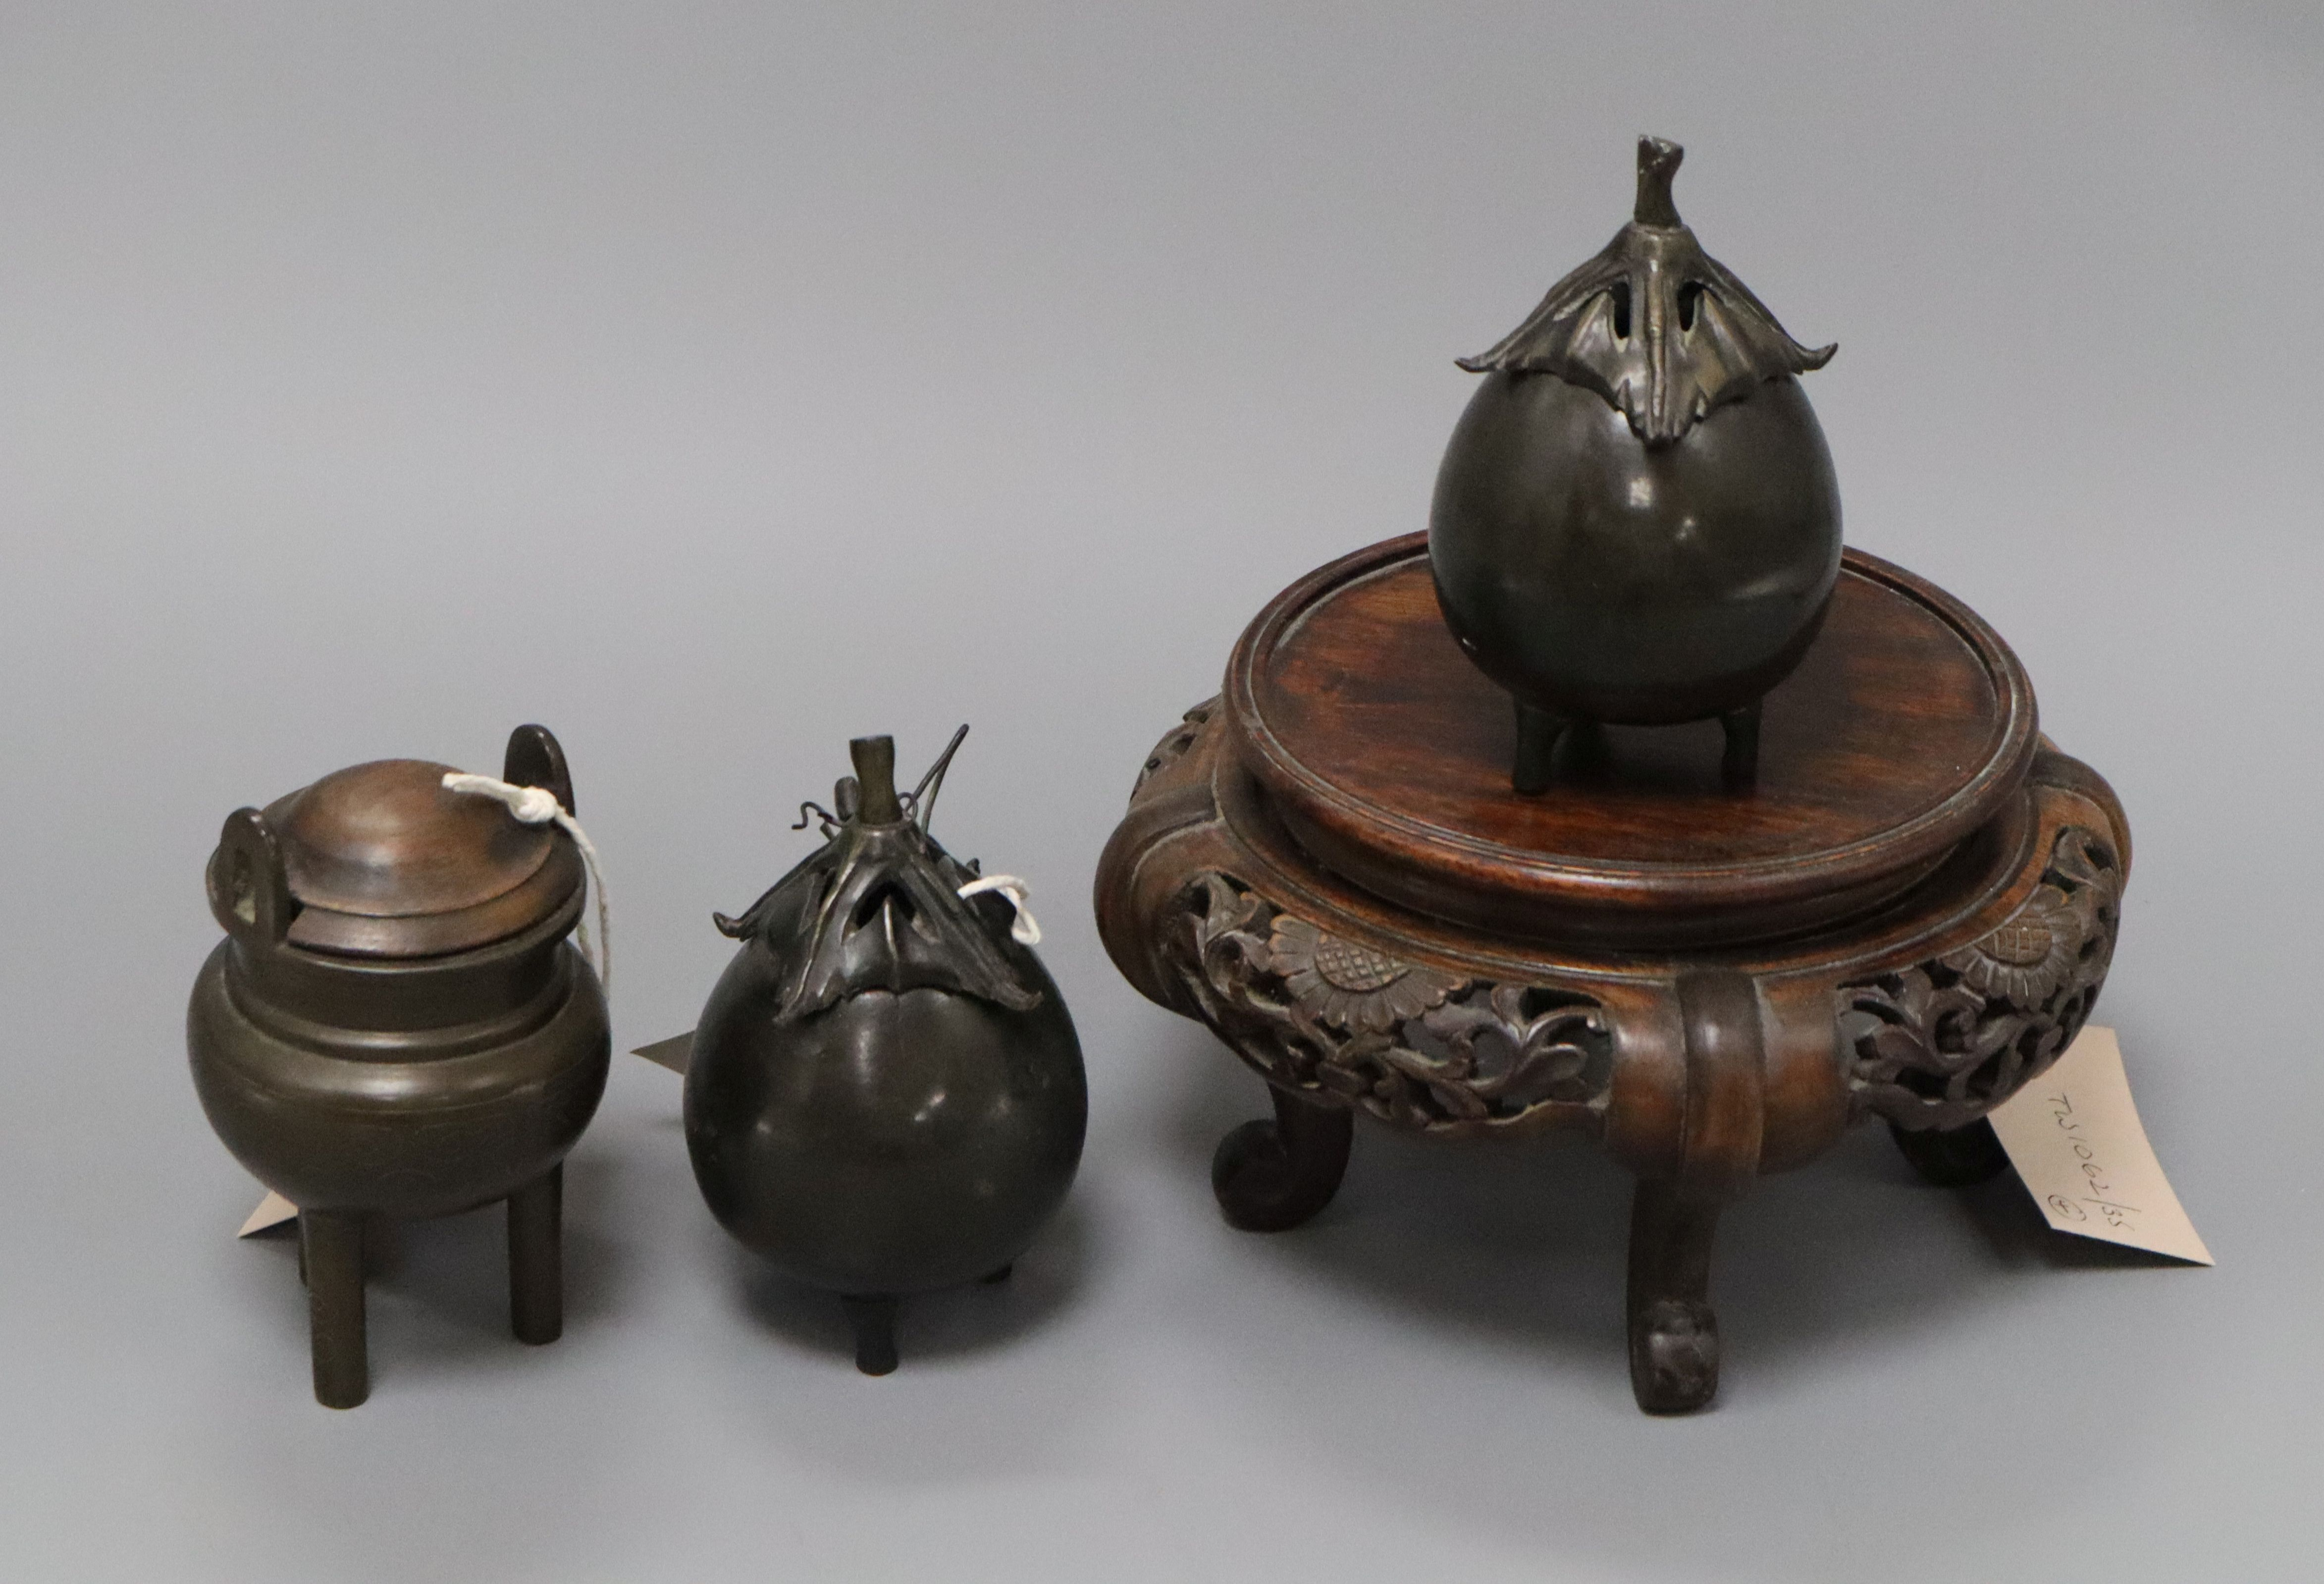 Lot 86 - Three bronze koros and covers and a Chinese carved hardwood stand